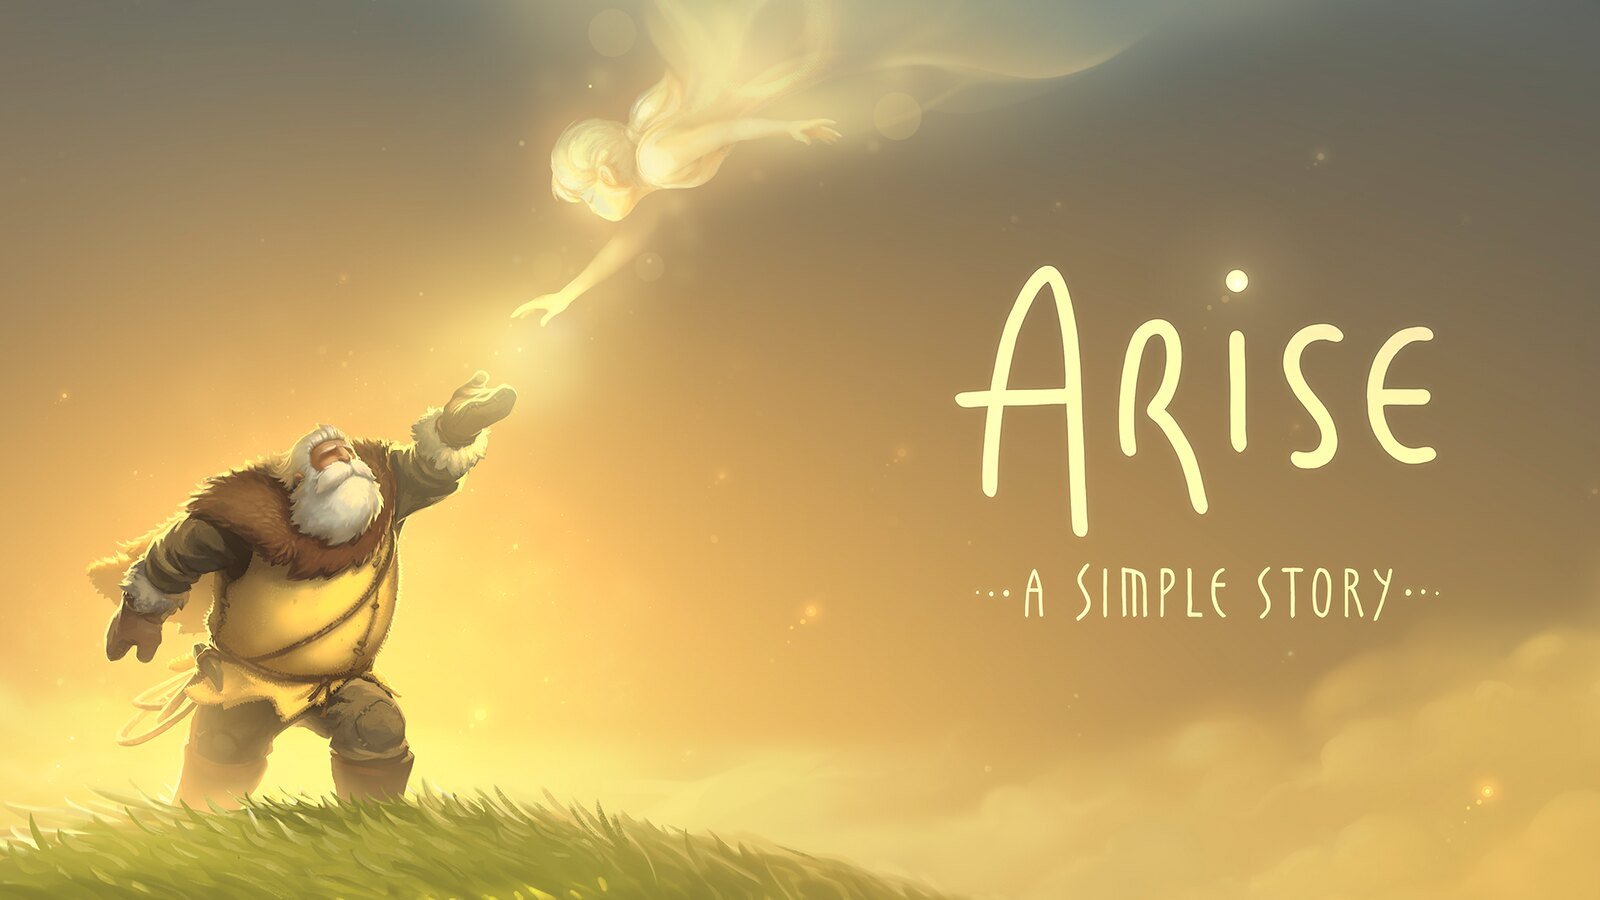 Techland, The Developers Behind Dying Light, Are Working On A More Emotional Adventure Called Arise: A Simple Story